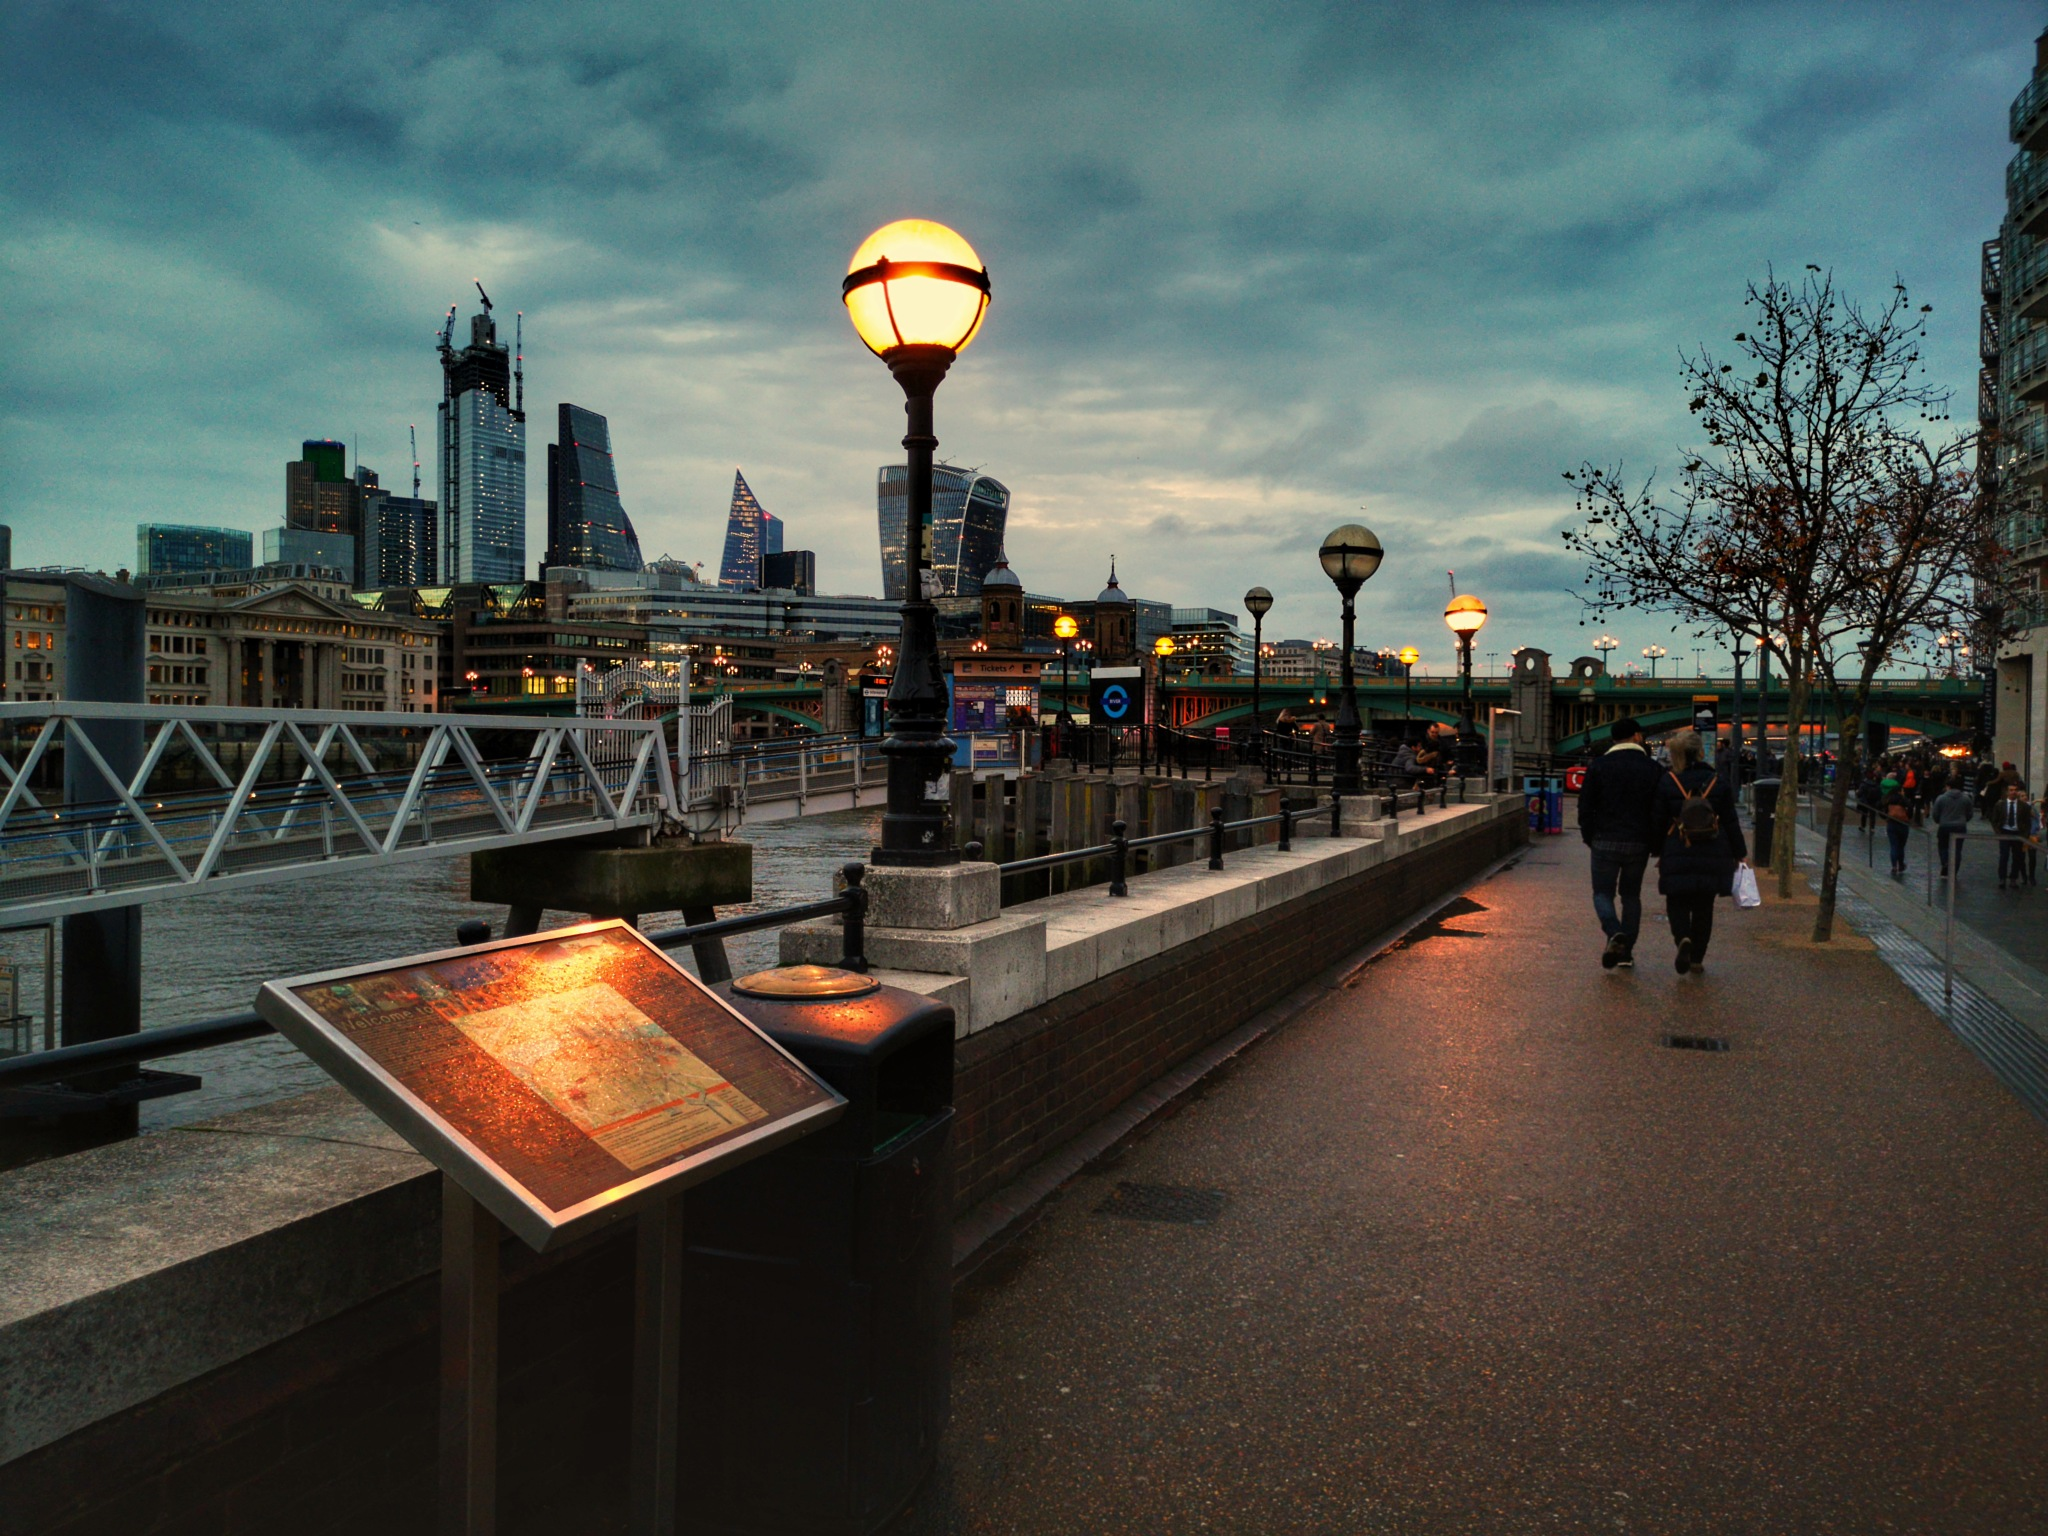 Evening walk on the Southbank by Thomas White Photos